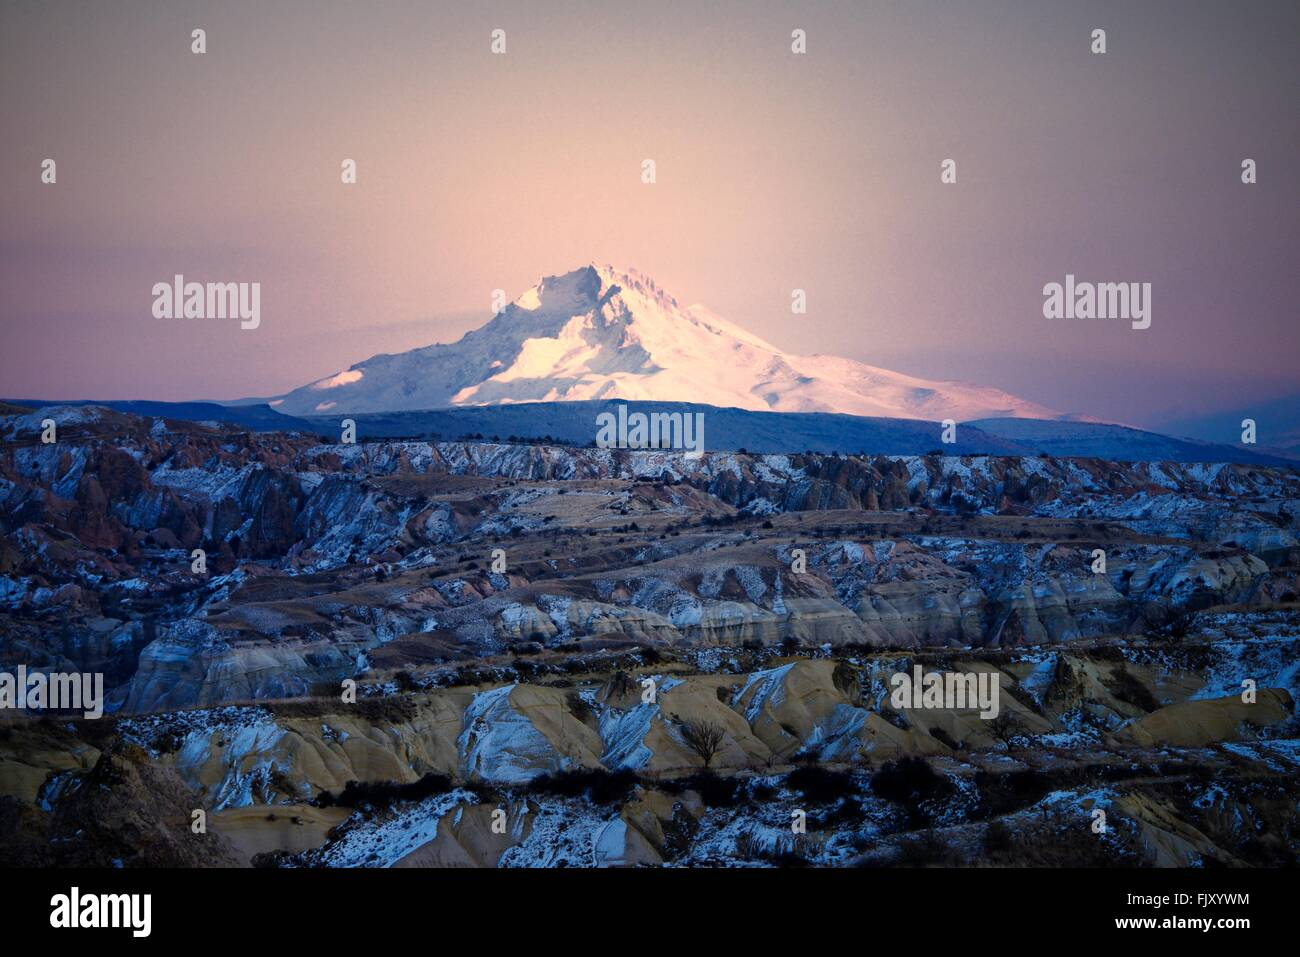 Snow covered volcanic 3916m peak of Mount Erciyes, highest mountain in central Anatolia Turkey. S.E. over gorges - Stock Image